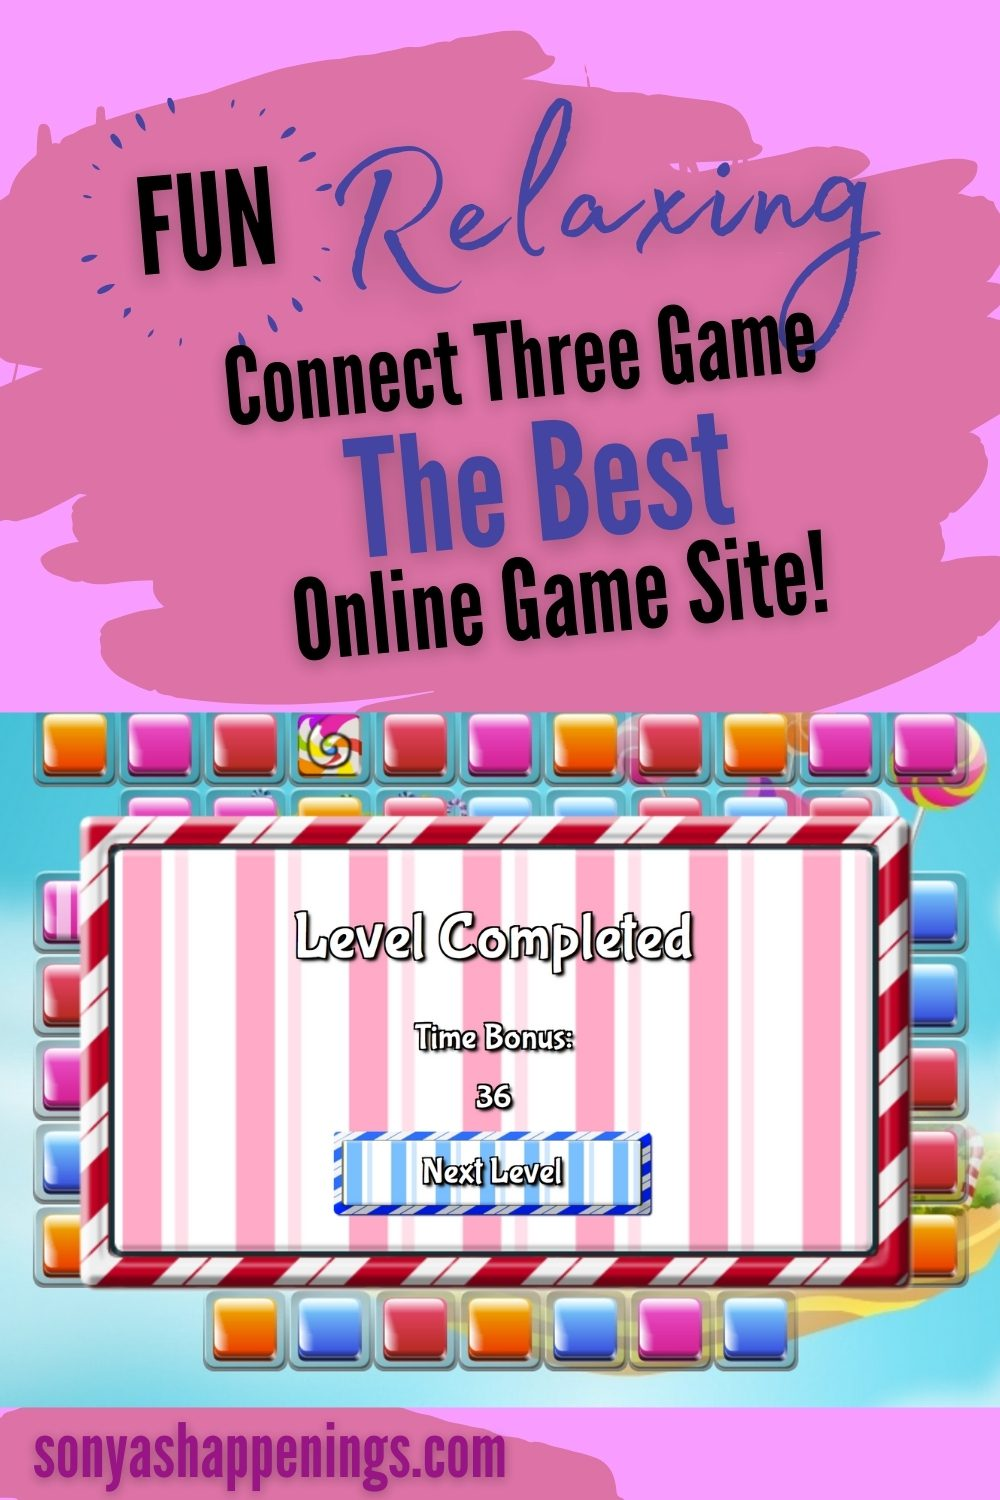 Need To Relax ~ Playing Online Games Can Be The Answer